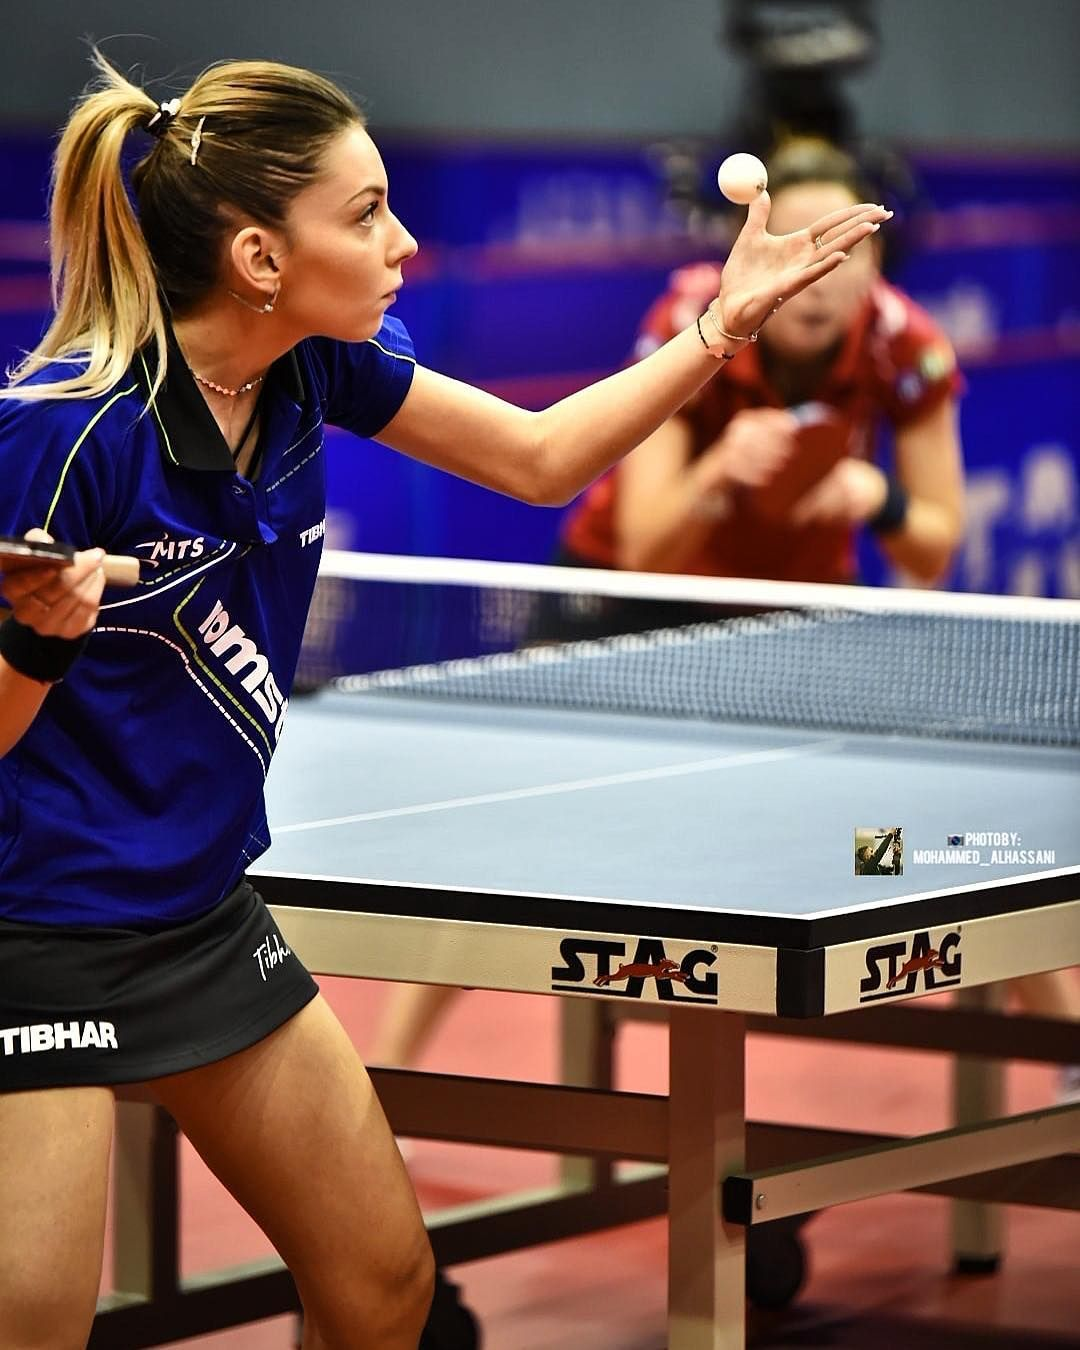 Today I Arrived In Doha Now All My Focus Is On The Qatar Worldtour Platinum My First Match Will Start Tomorrow And I Feel Ready And